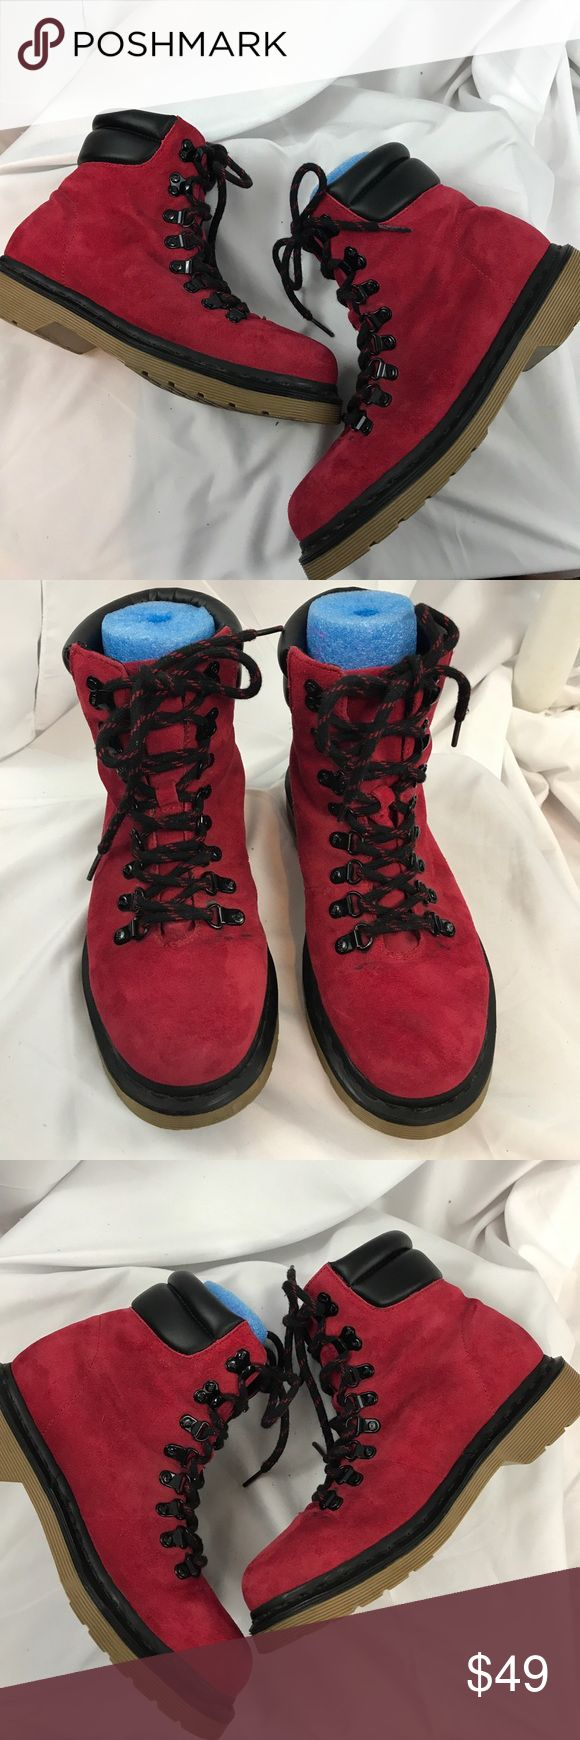 Dr. Martens sz7 Iris red suede lace up boots Excellent used condition Dr. Martens sz7 Iris red suede lace up boots...hiker boot style...some marks on both near laces-doesn't affect wear... Dr. Martens Shoes Ankle Boots & Booties